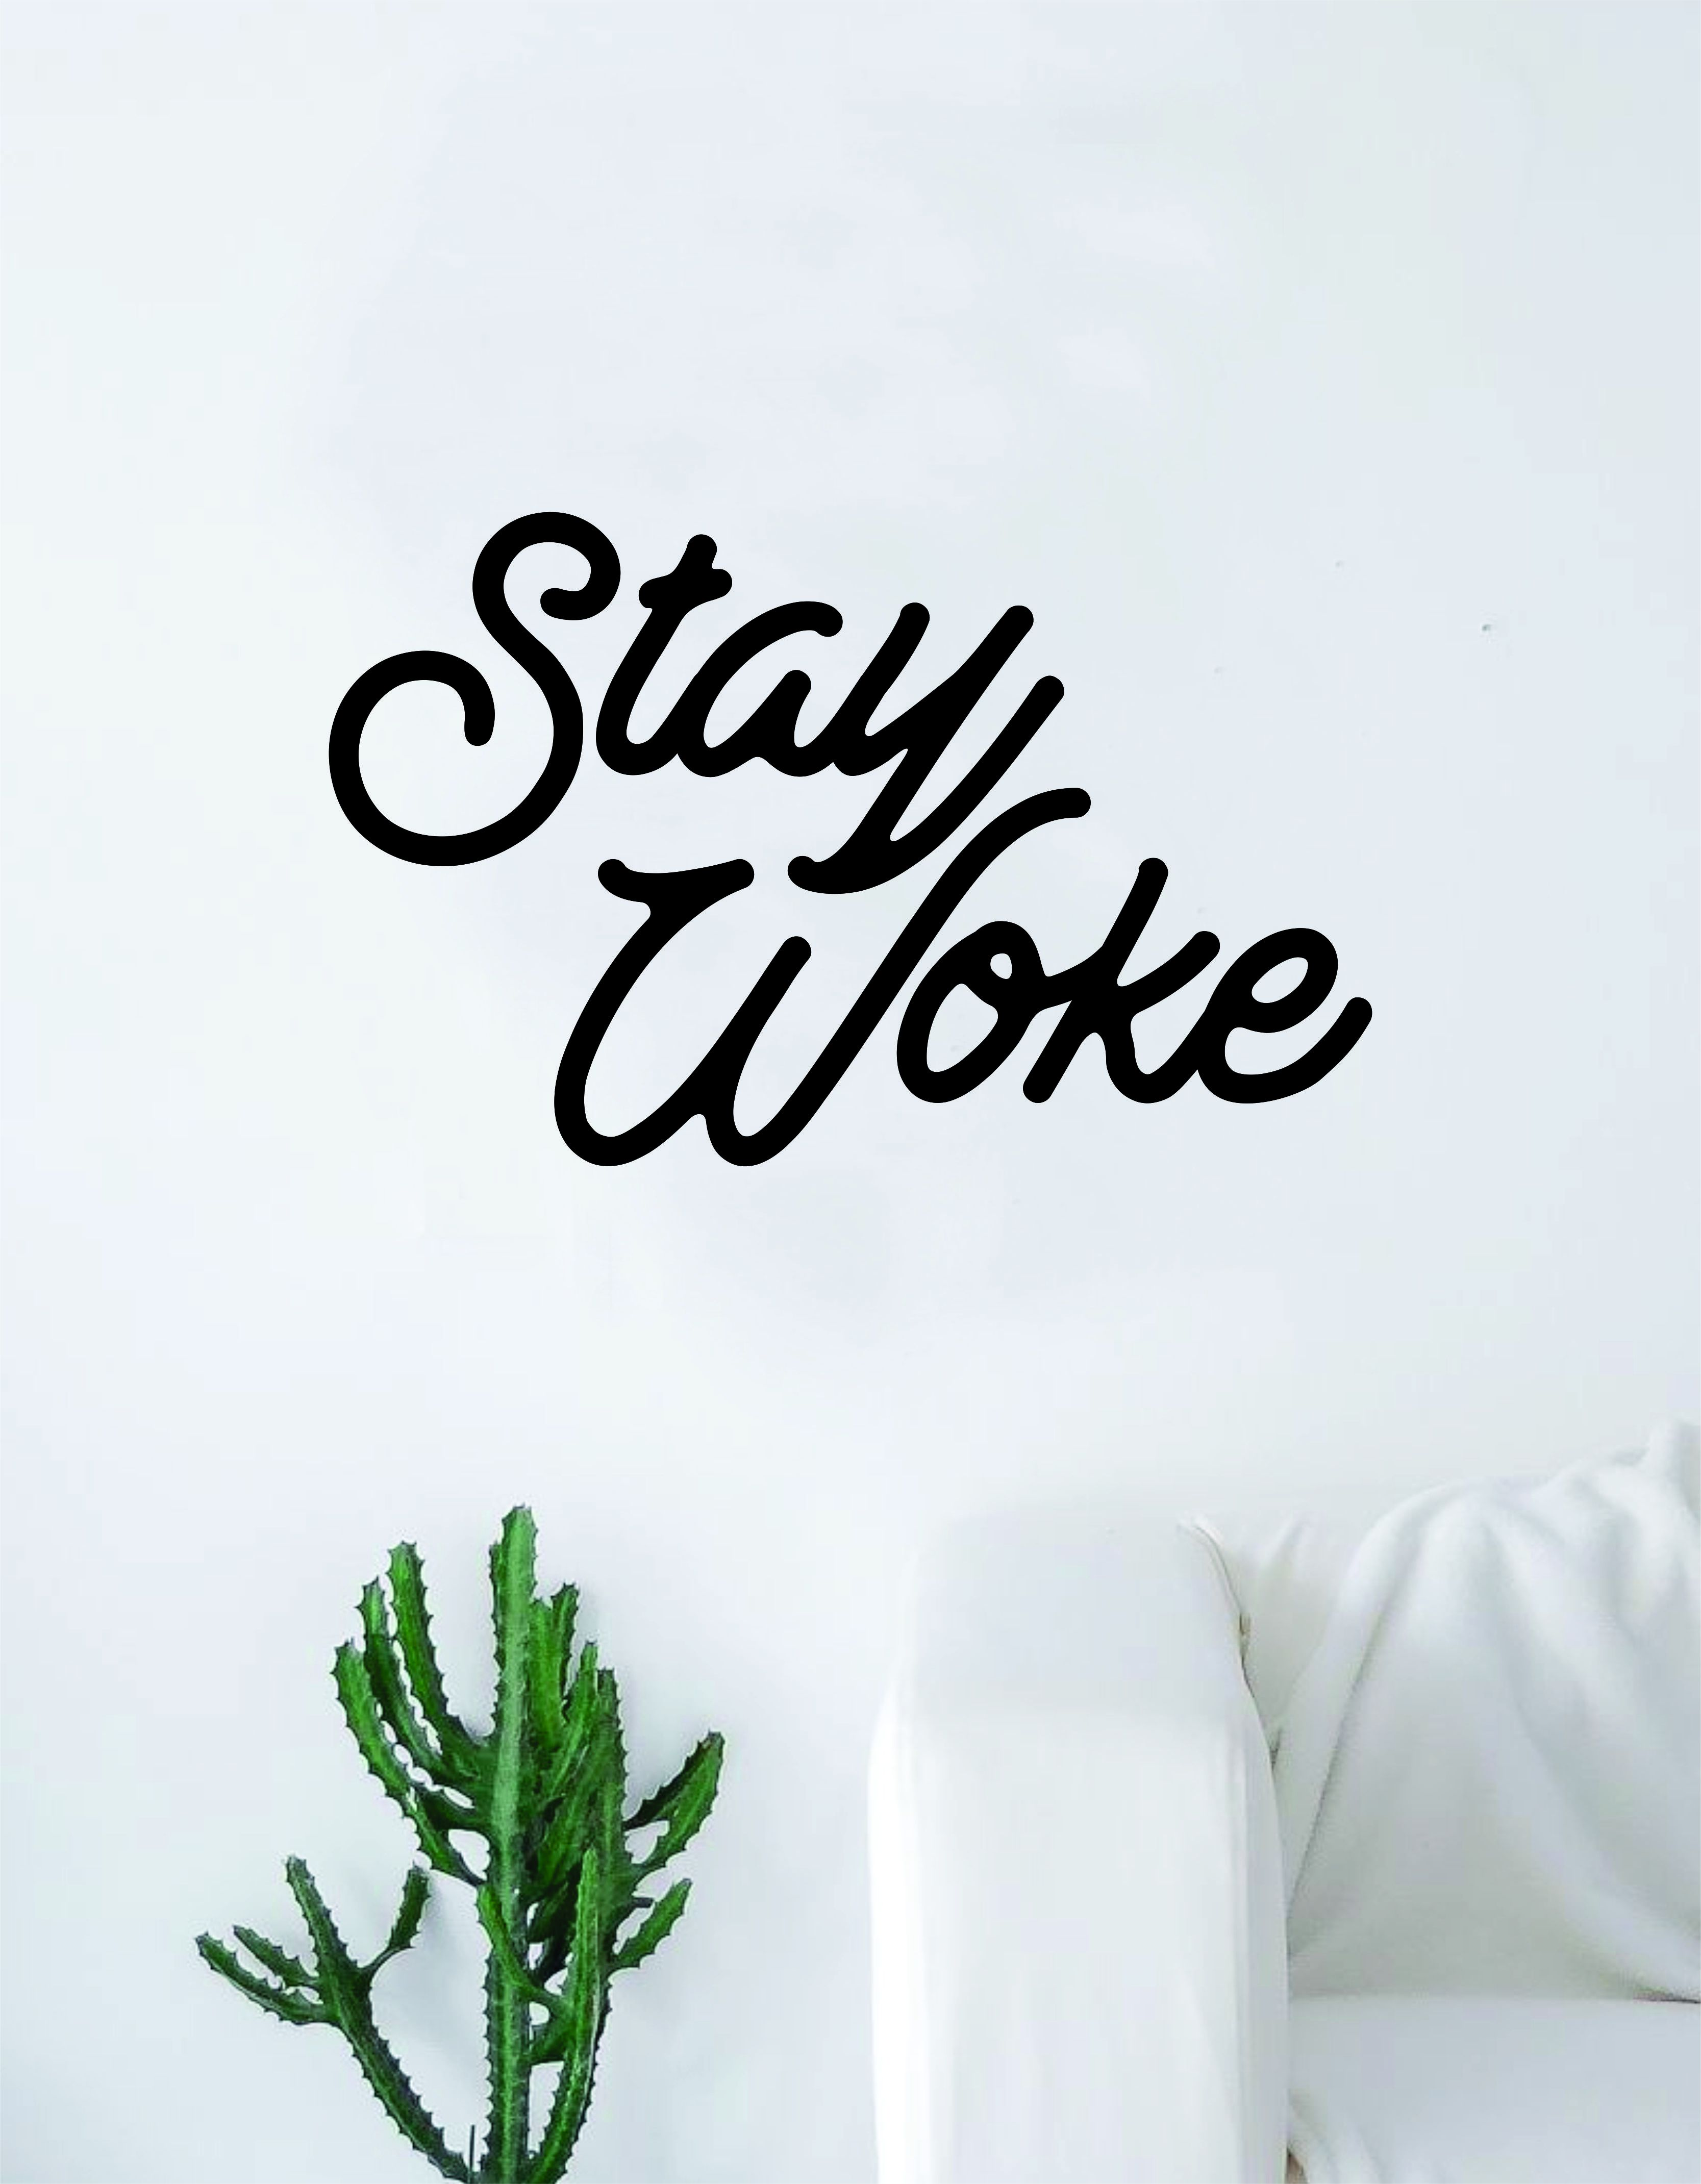 Stay Woke V2 Quote Decal Sticker Wall Vinyl Bedroom Room Home Decor Art Inspirational Teen Funny - white